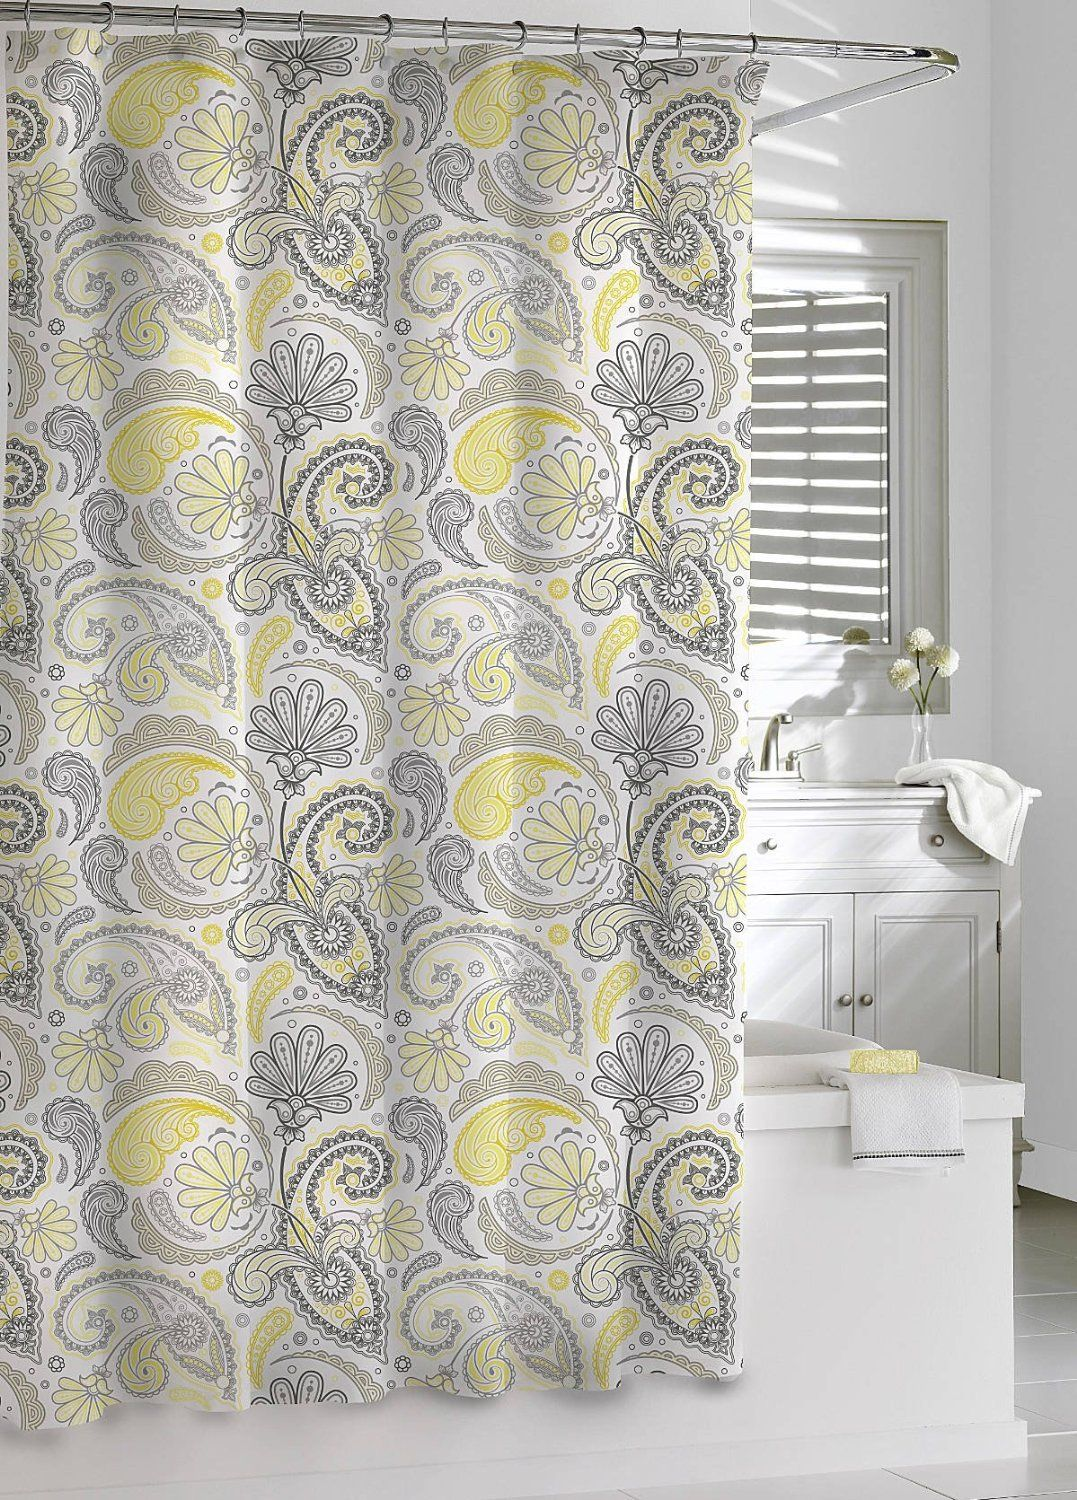 Kassatex Paisley Shower Curtain YellowGrey 72 By 72 Inch Decorating With